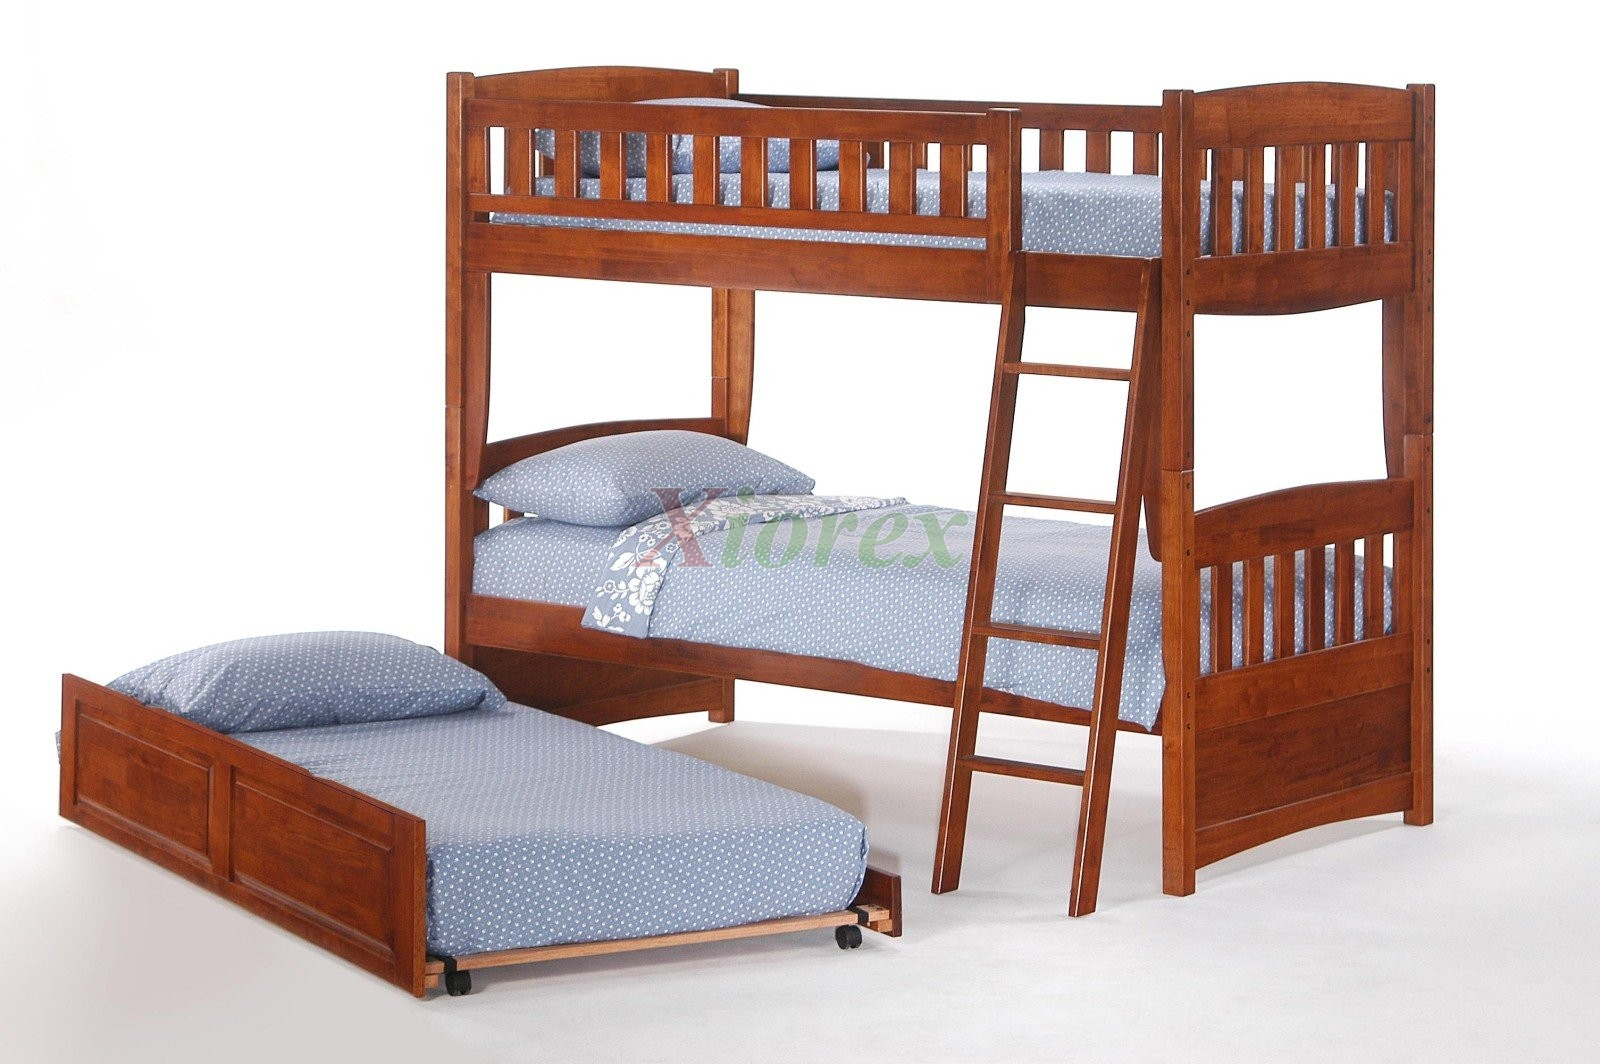 night and day cinnamon bunk bed twin twin bunk bed set xiorex bunkbeds. Black Bedroom Furniture Sets. Home Design Ideas